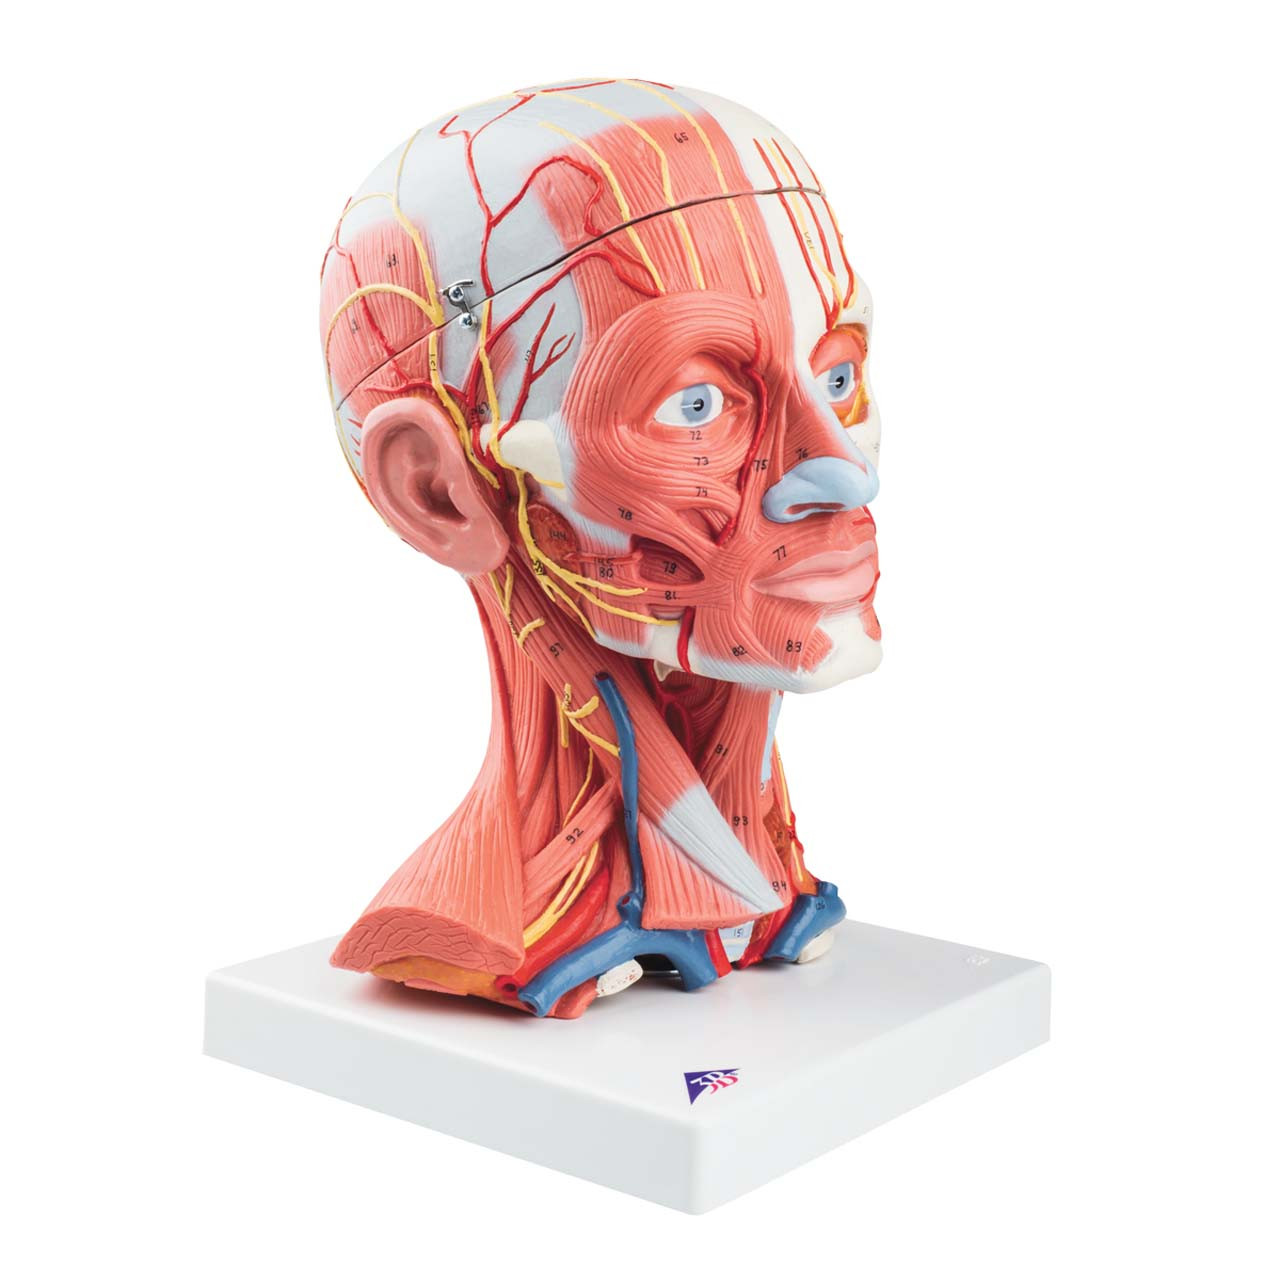 1000214 - Head and Neck Musculature, 5 part